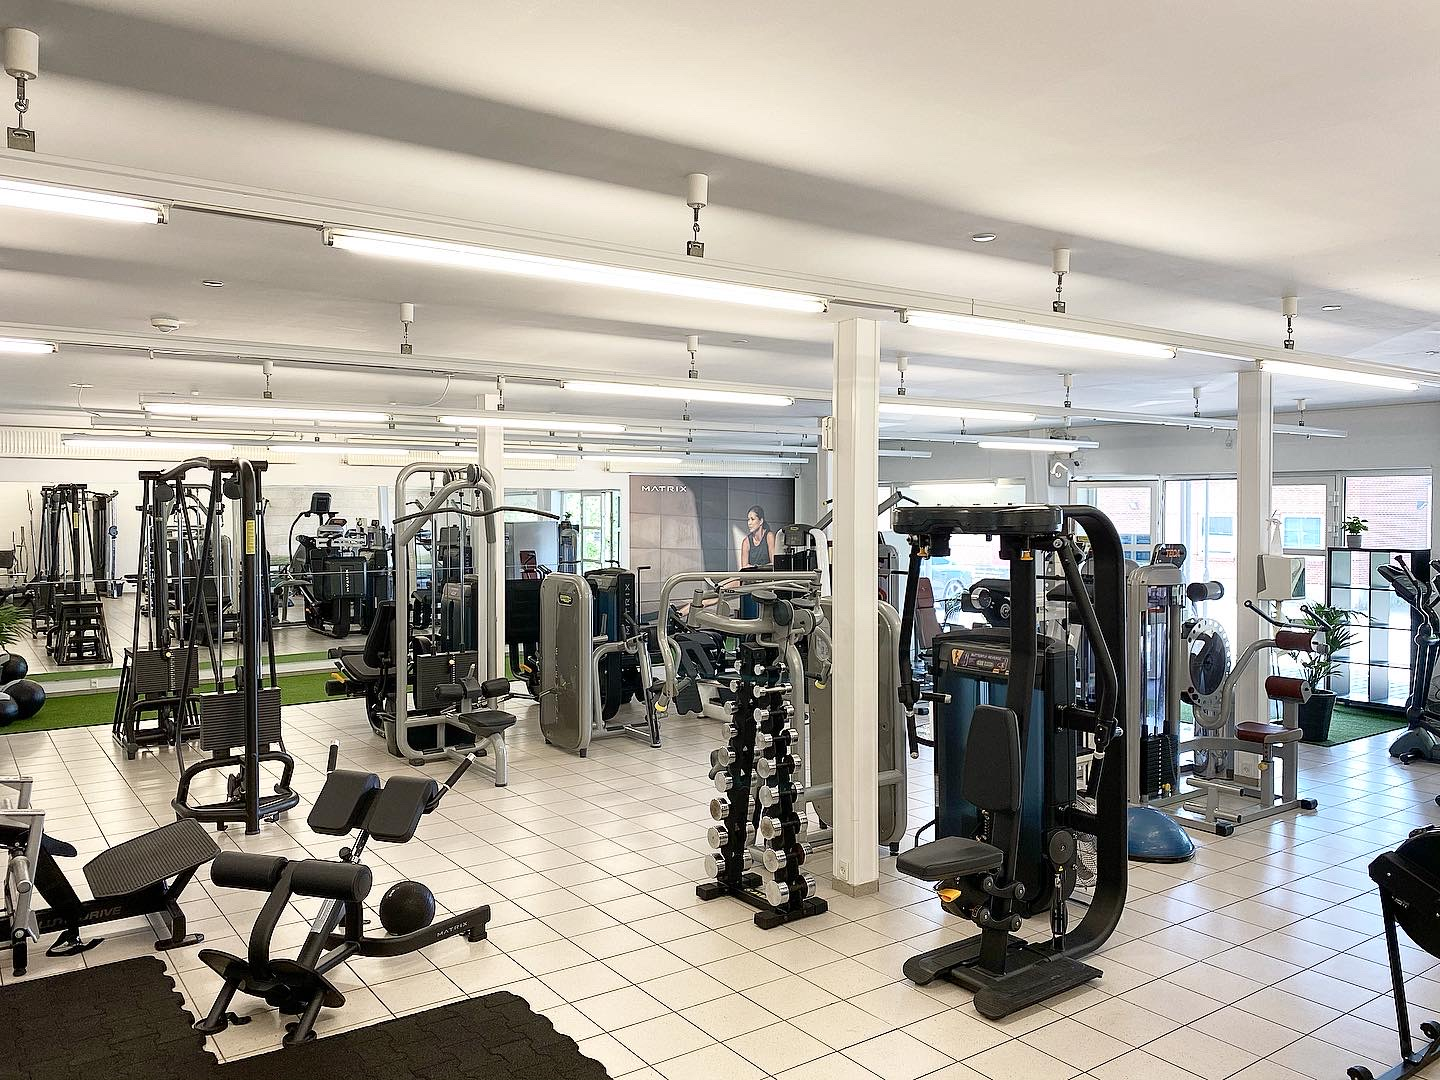 EgtvedFitness Machines